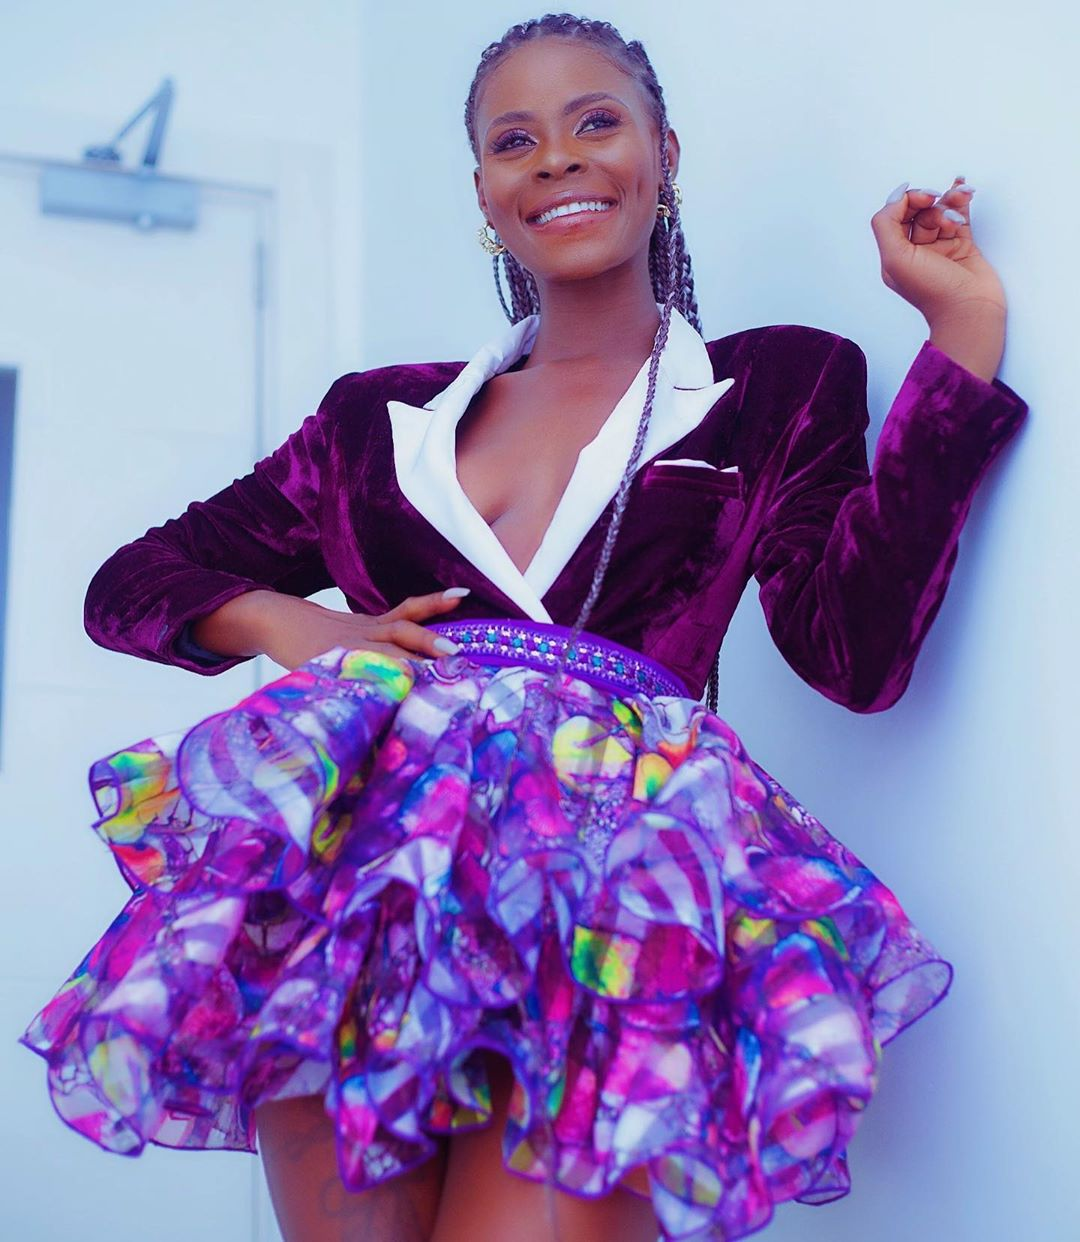 BBNaija's Khloe reacts after being call out for having s3x behind school mosque